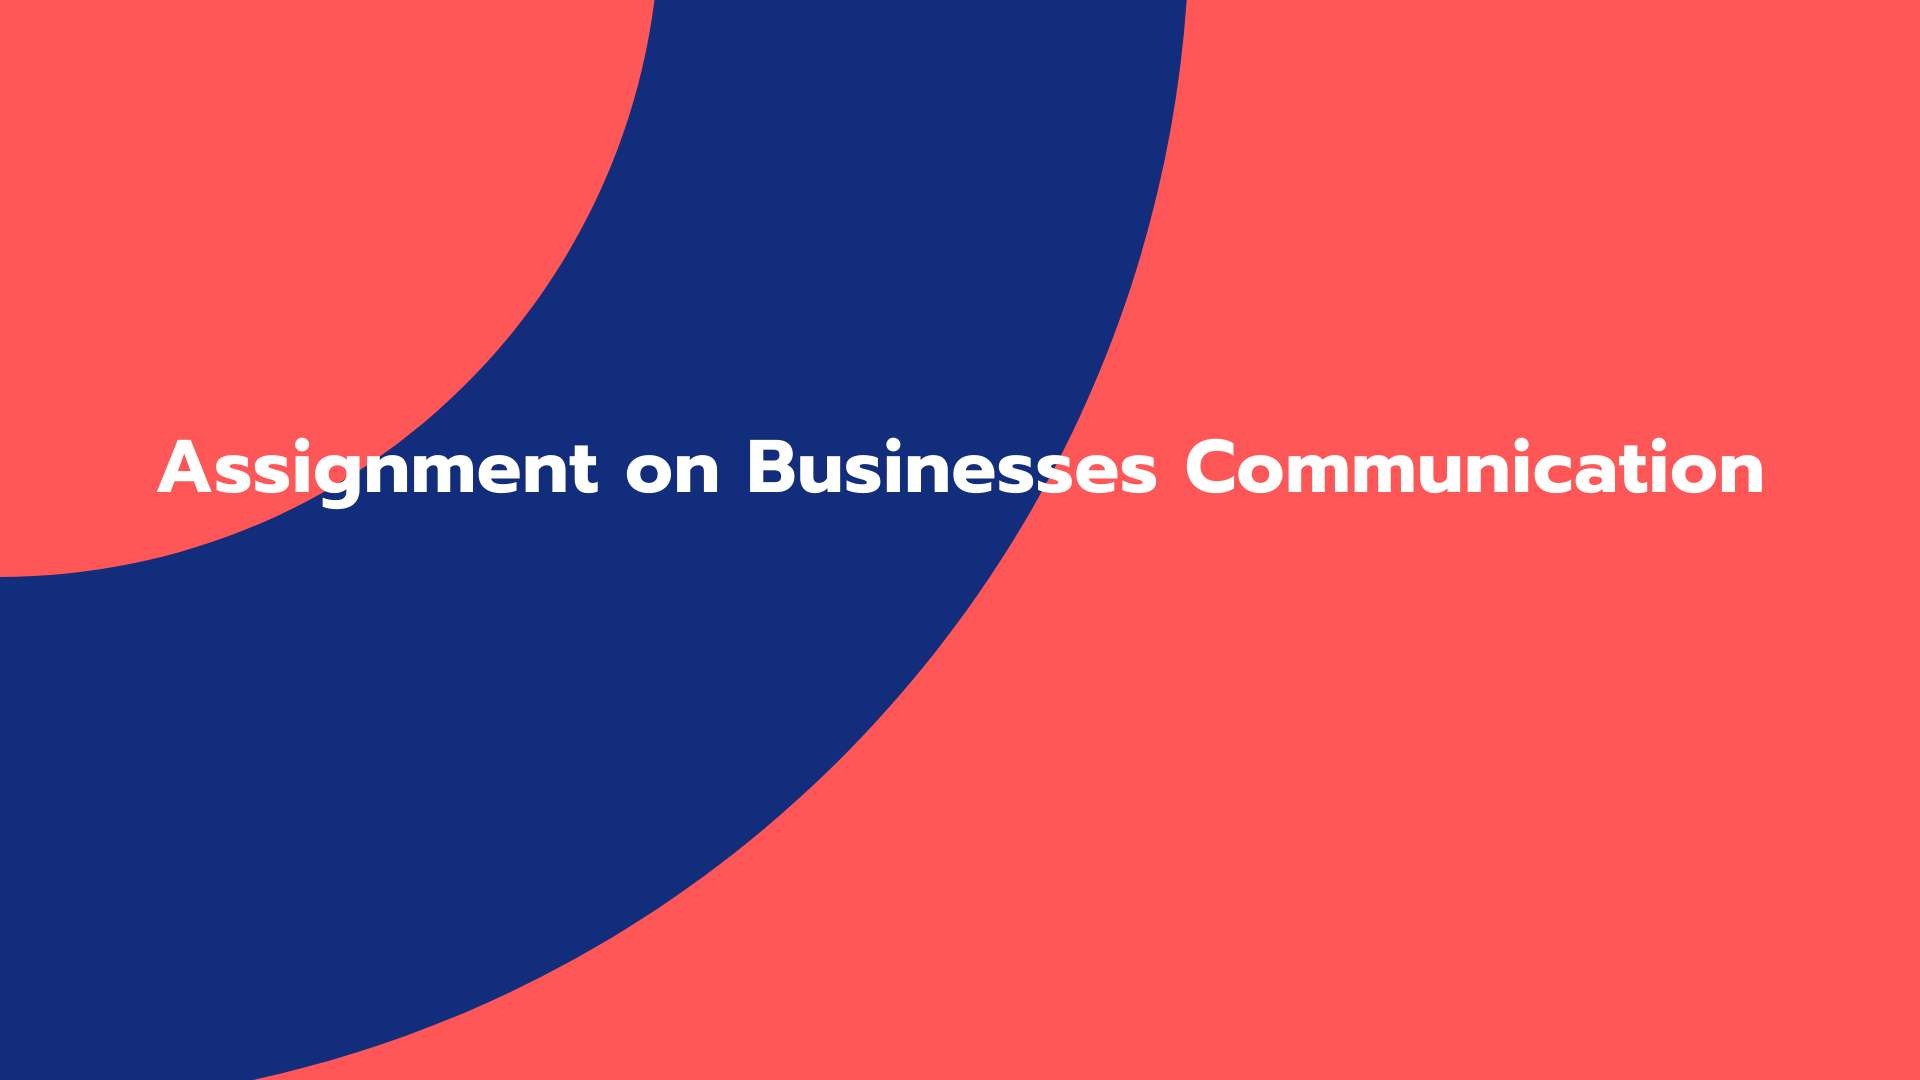 Assignment on Businesses Communication